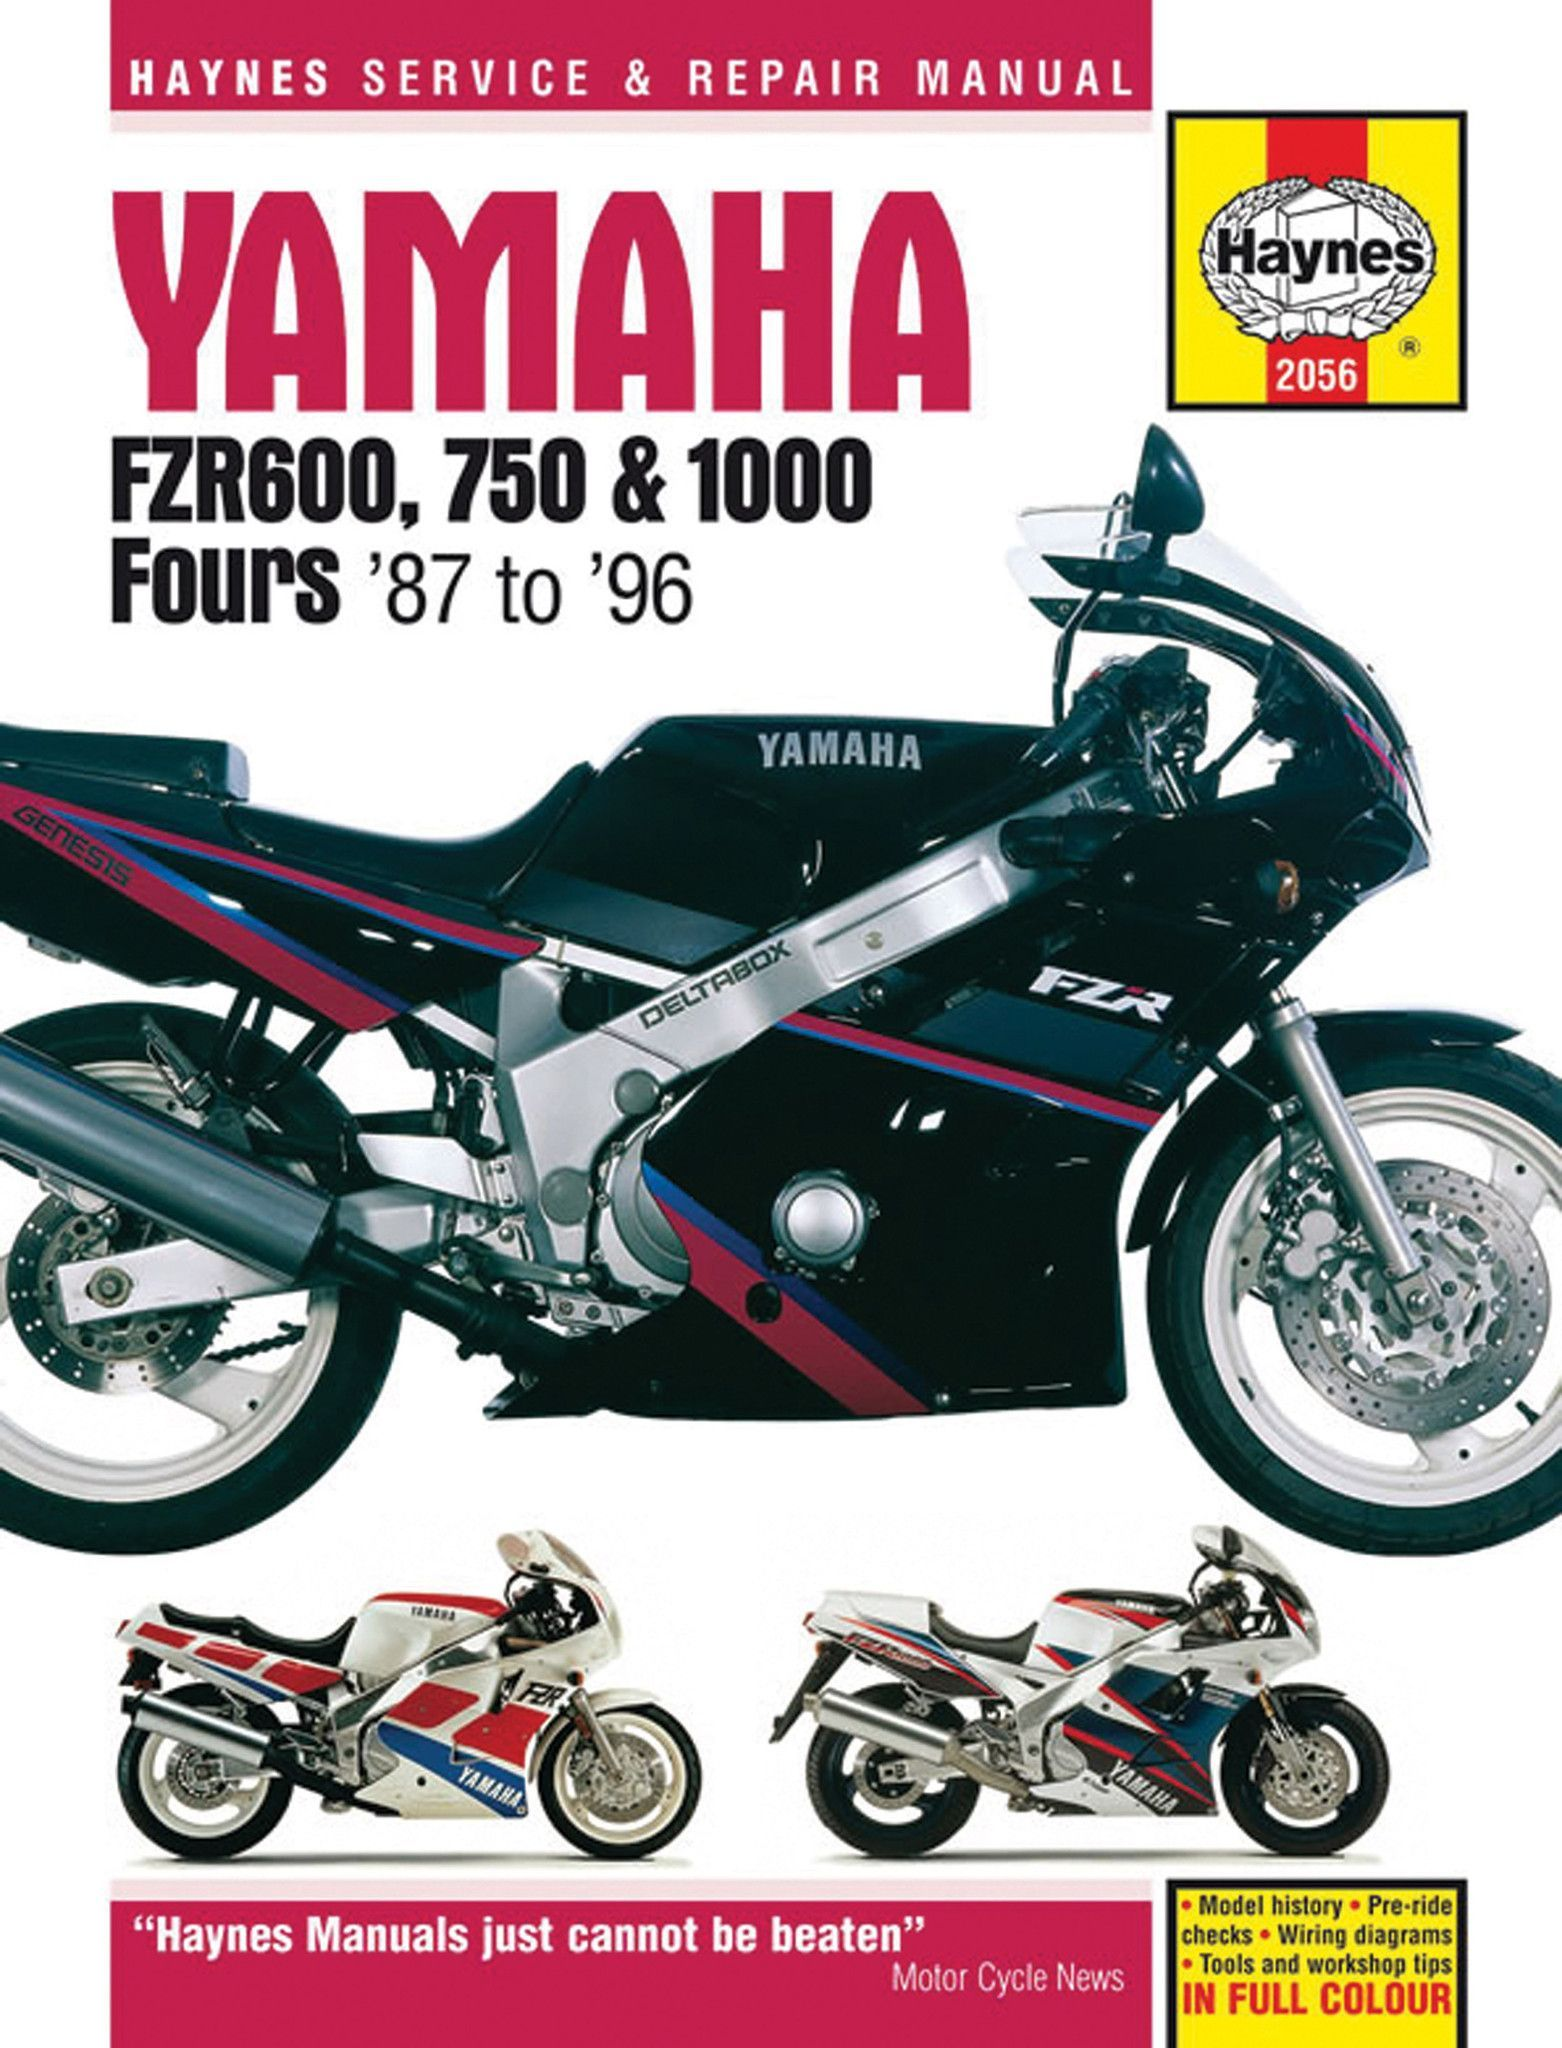 wiring diagram needed for 1989 yamaha fzr1000 genesis wiring wiring diagram needed for 1989 yamaha fzr1000 [ 1562 x 2048 Pixel ]